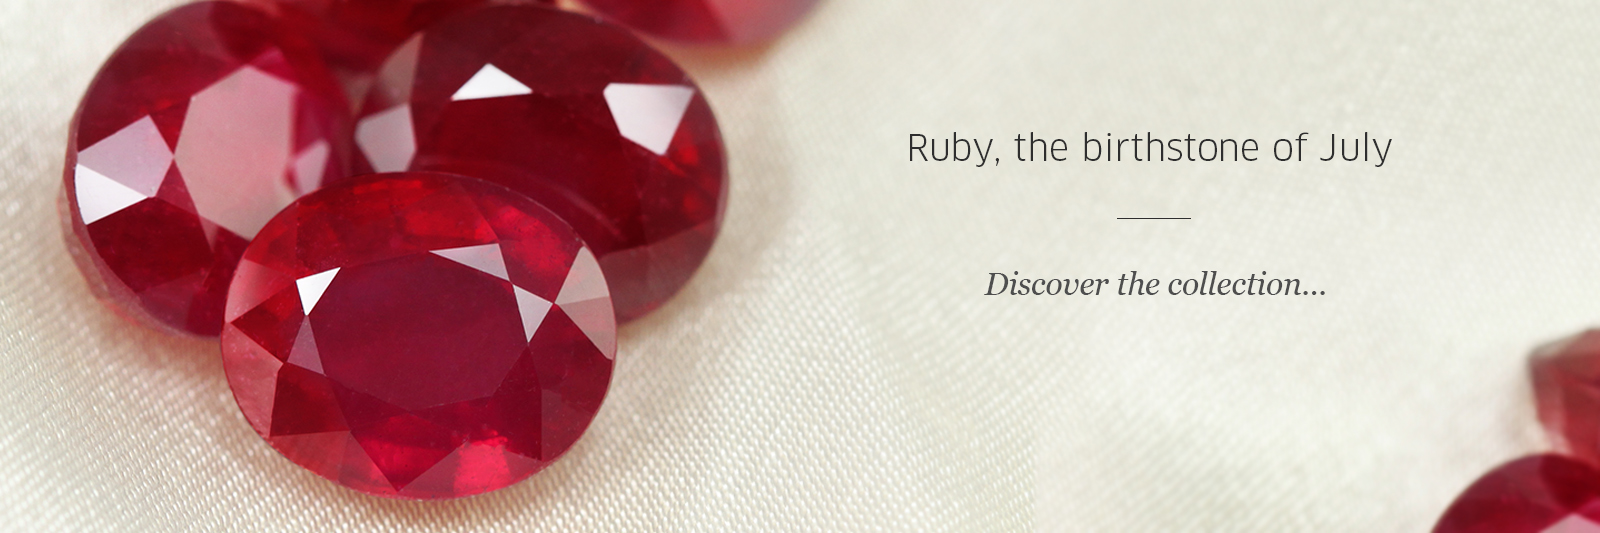 Birthstone of July: Ruby at Rocks & Co.